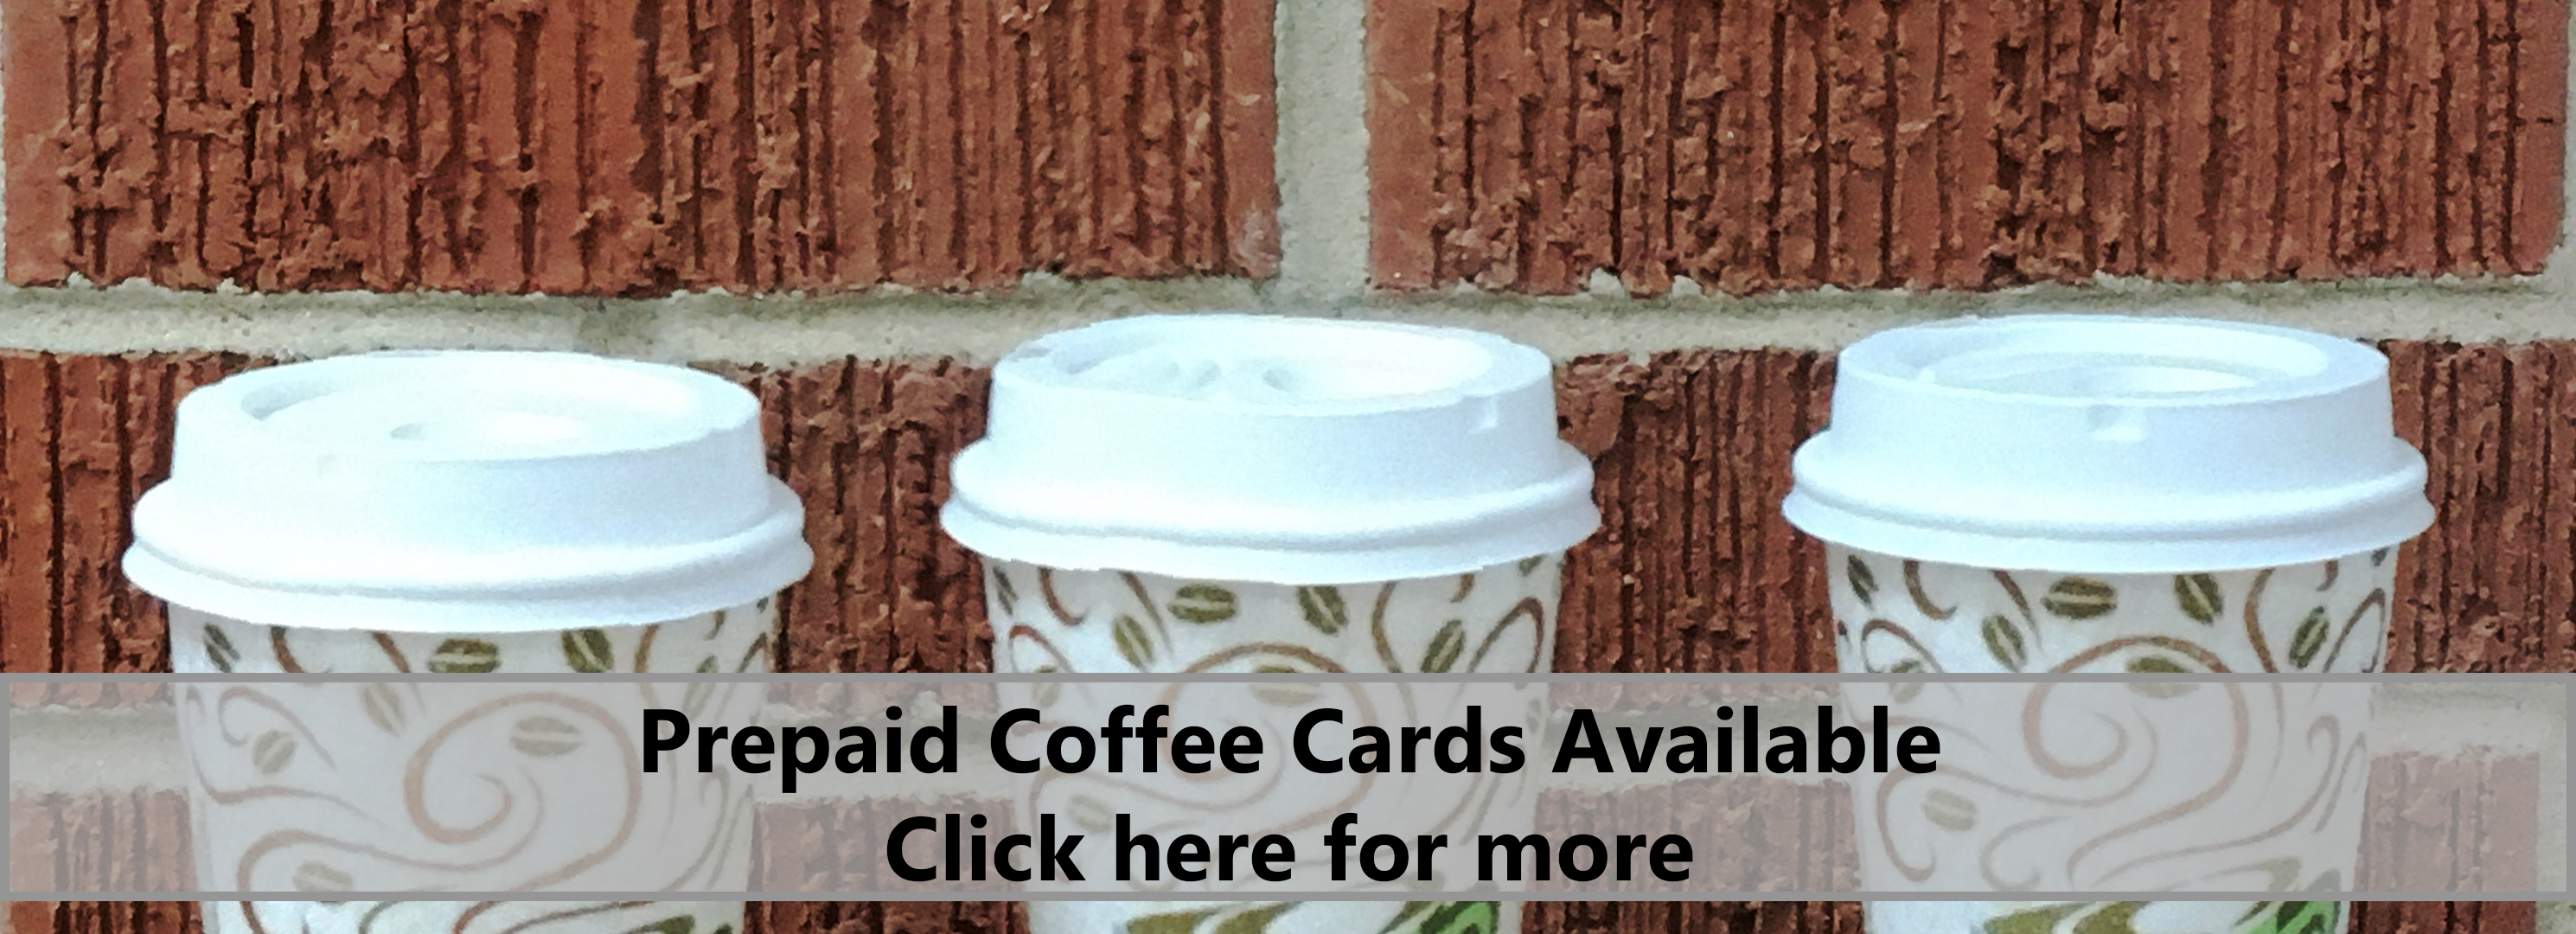 Prepaid coffee cards available click here for more